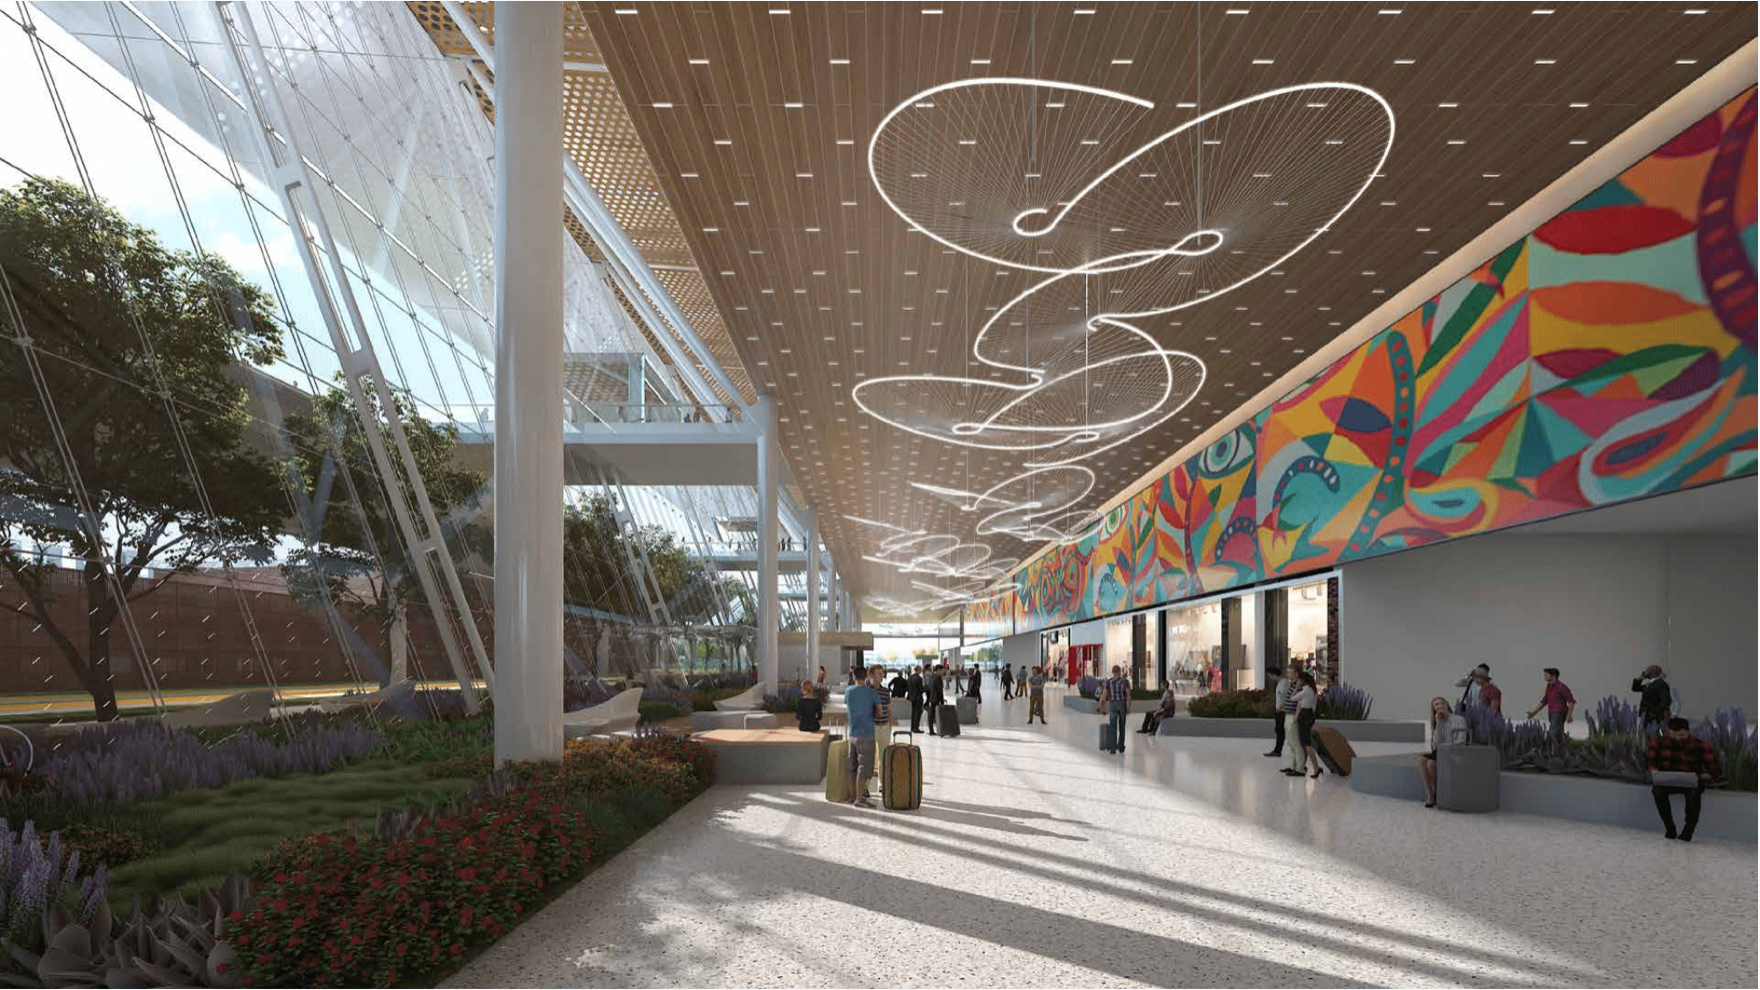 Guadalajara Airport Terminal with local art